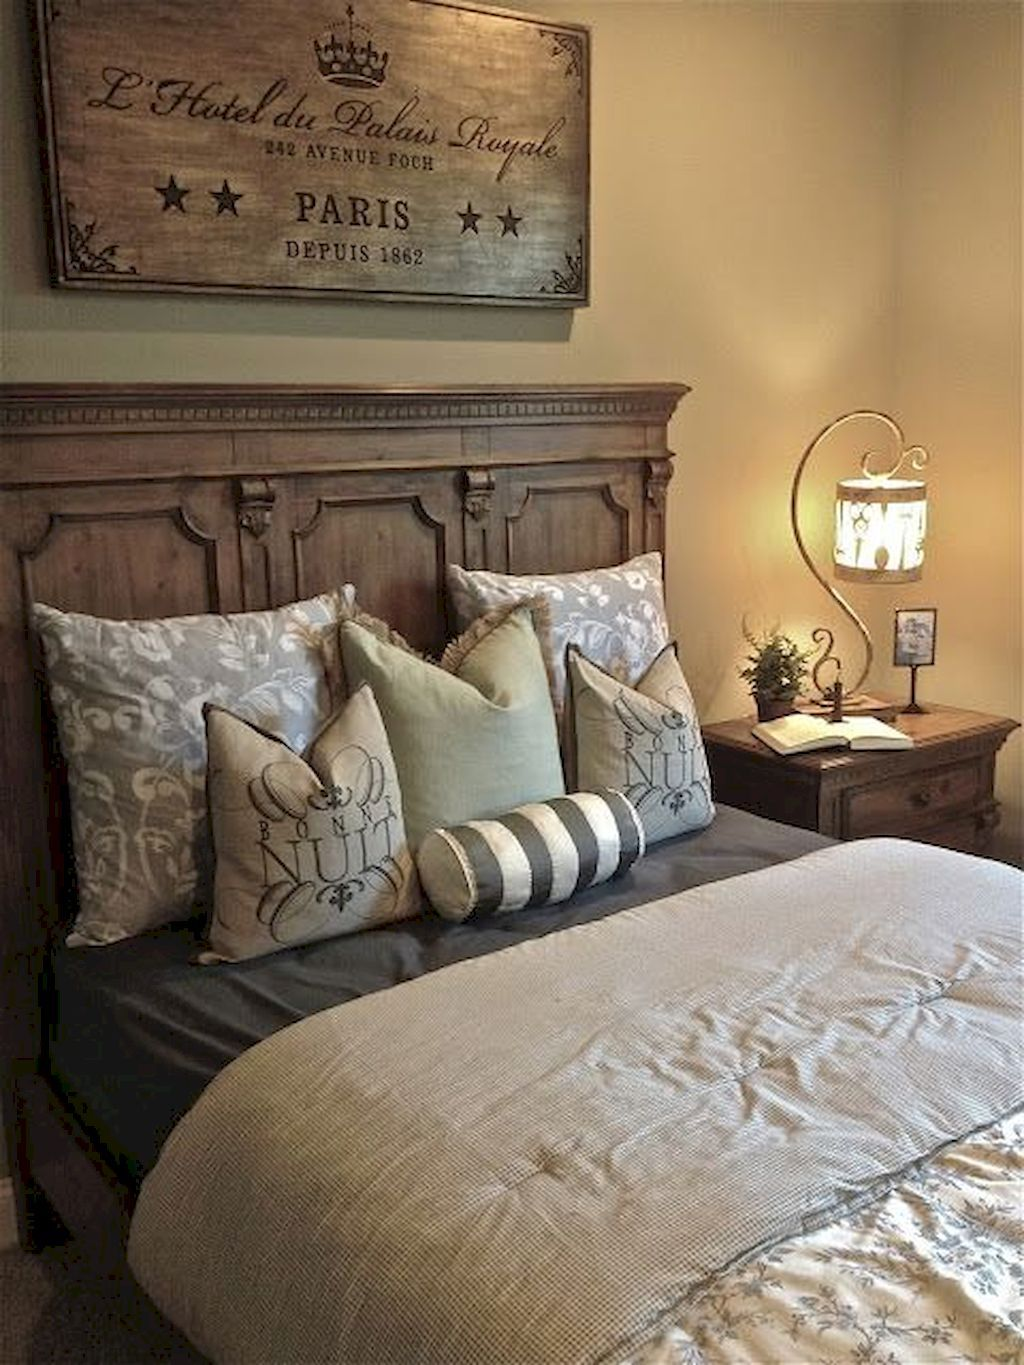 Gorgeous 70 Simple French Country Bedroom Decor Ideas On A Budget Bedroom Https Doitdecor Co Country Bedroom Decor Country Bedroom French Country Bedrooms